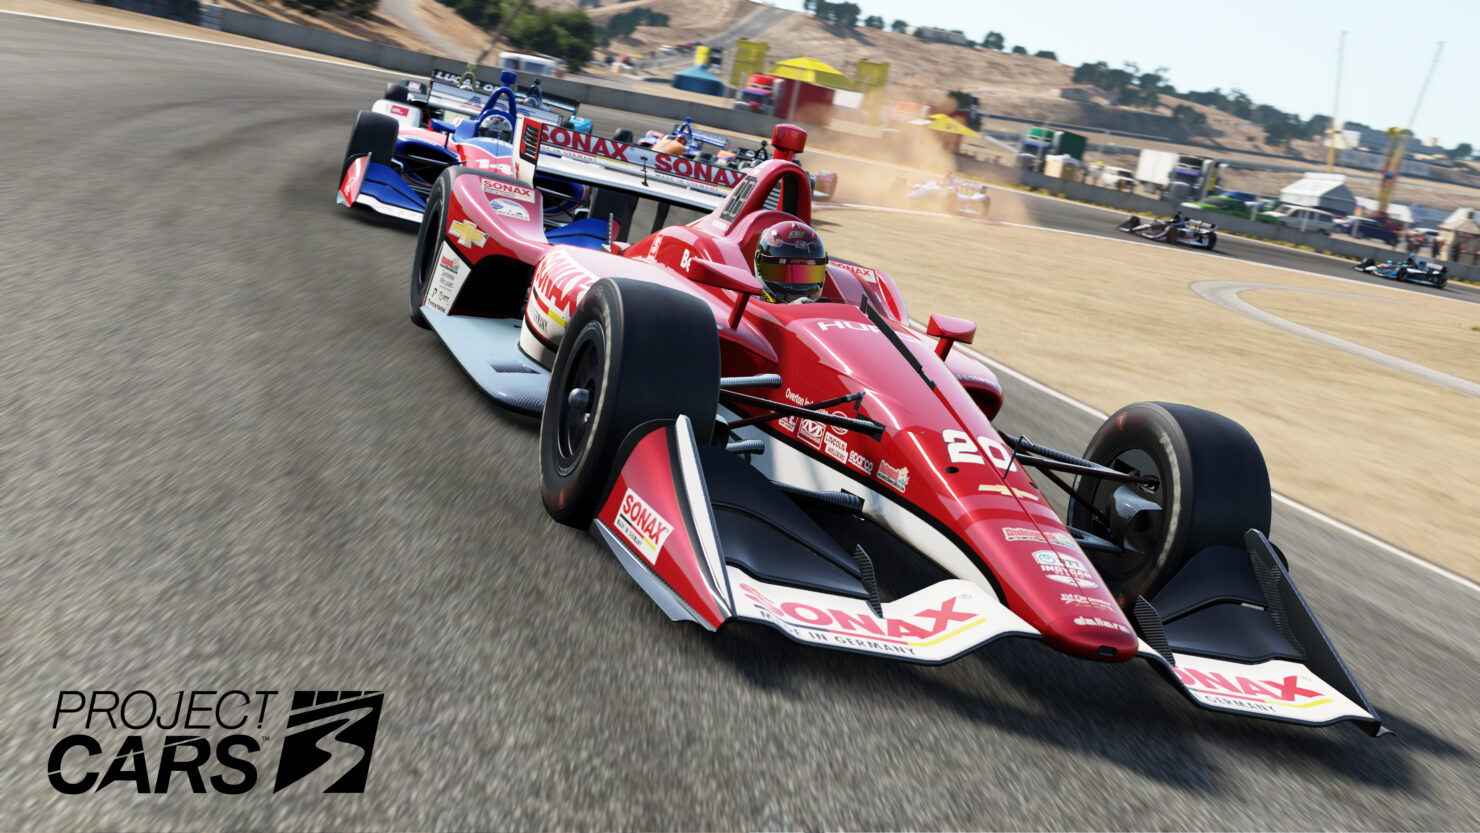 Project CARS 3 Tech Q&A – Engine Upgrades Detailed; No Ray Tracing or CrossPlay Planned - RapidAPI